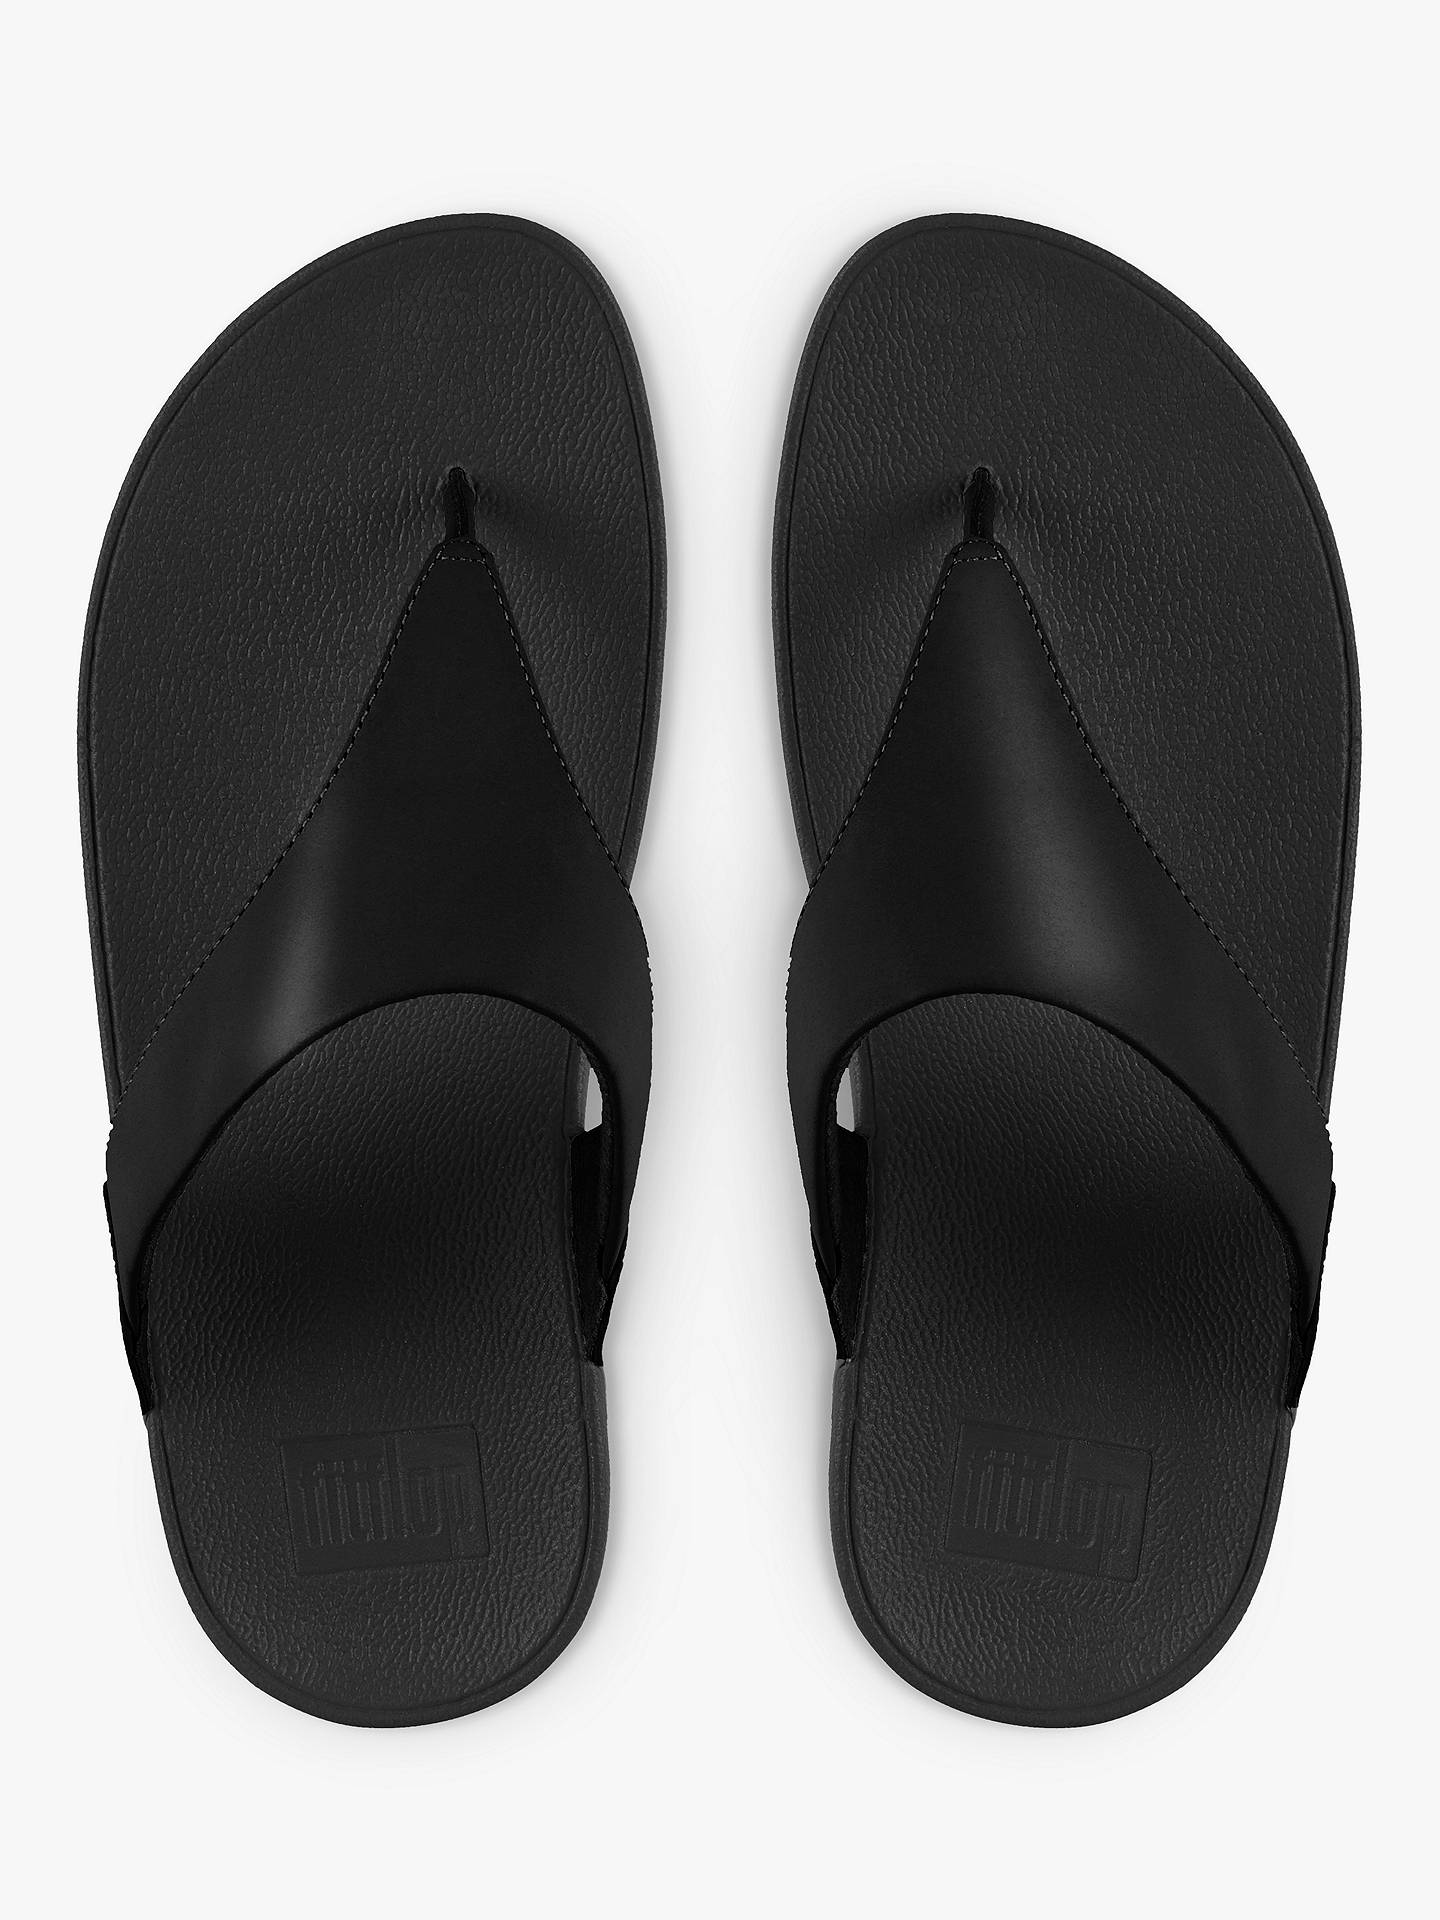 443944aa8d476 Buy FitFlop Lulu Toe Post Flip Flops